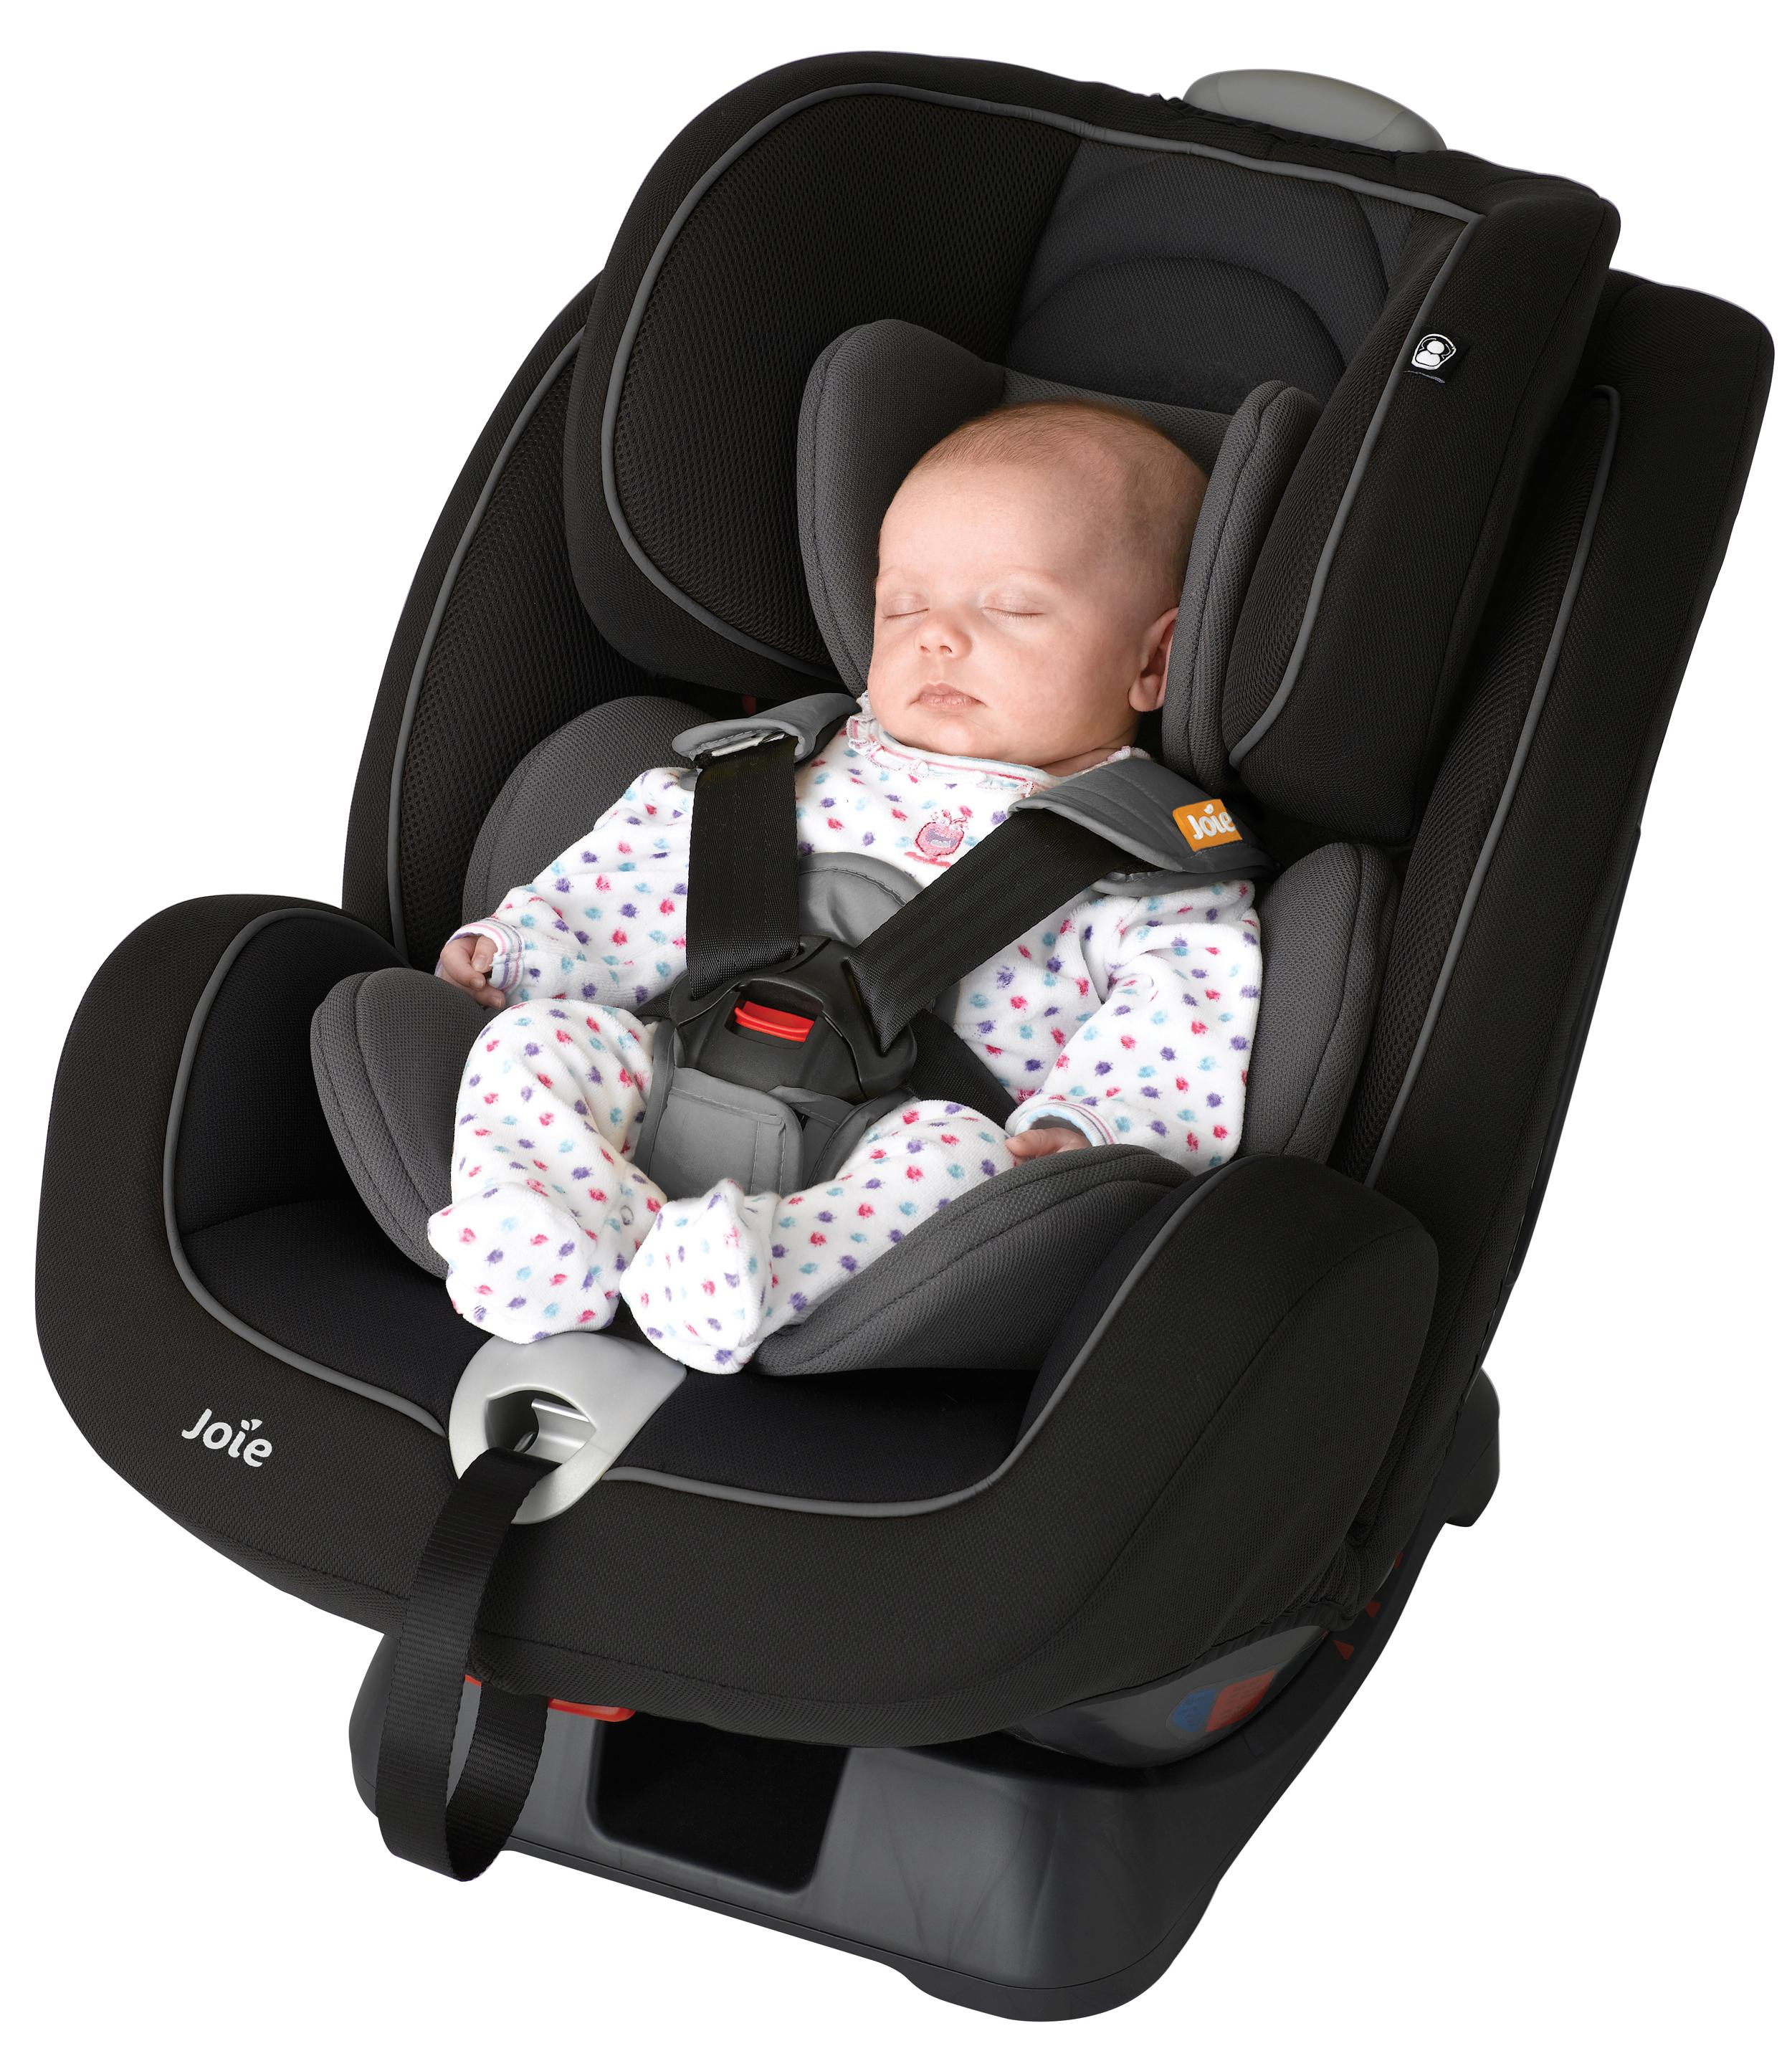 joie stages twilight caviar car baby child safety seat 0 7 yrs 0 25kg grp 0 1 2 ebay. Black Bedroom Furniture Sets. Home Design Ideas